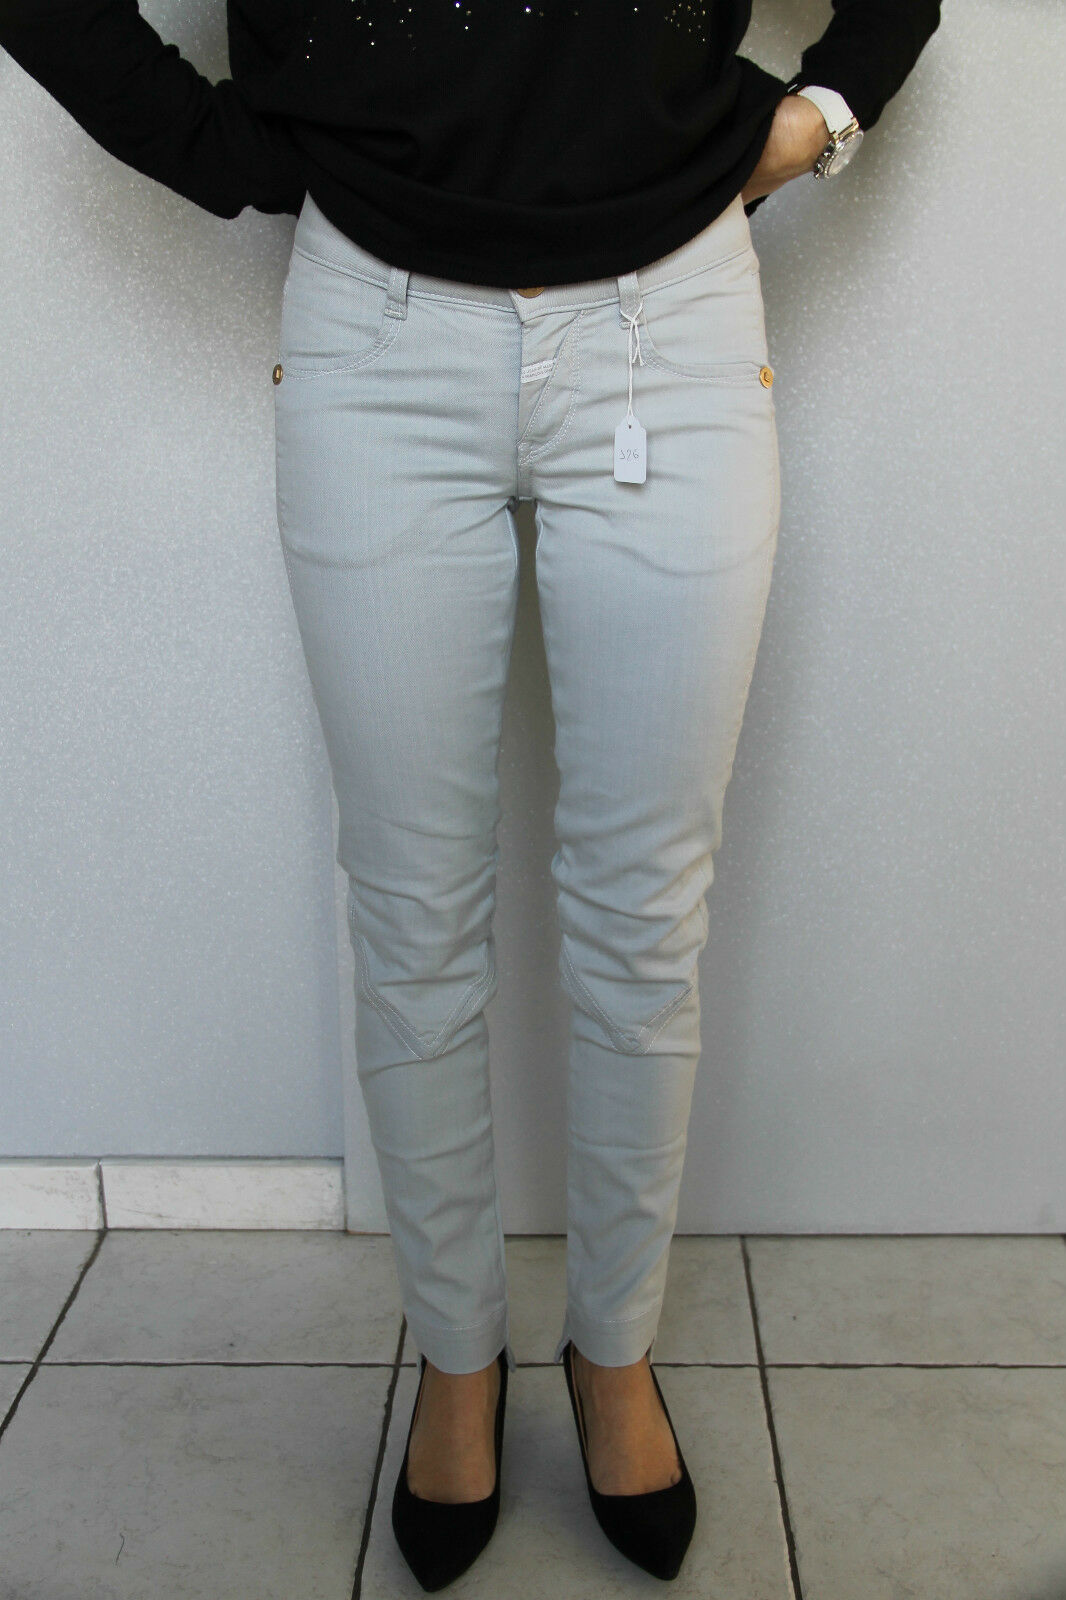 Jeans slim grey M & F GIRBAUD tiagageddon SIZE 29 (38-40) NEW value